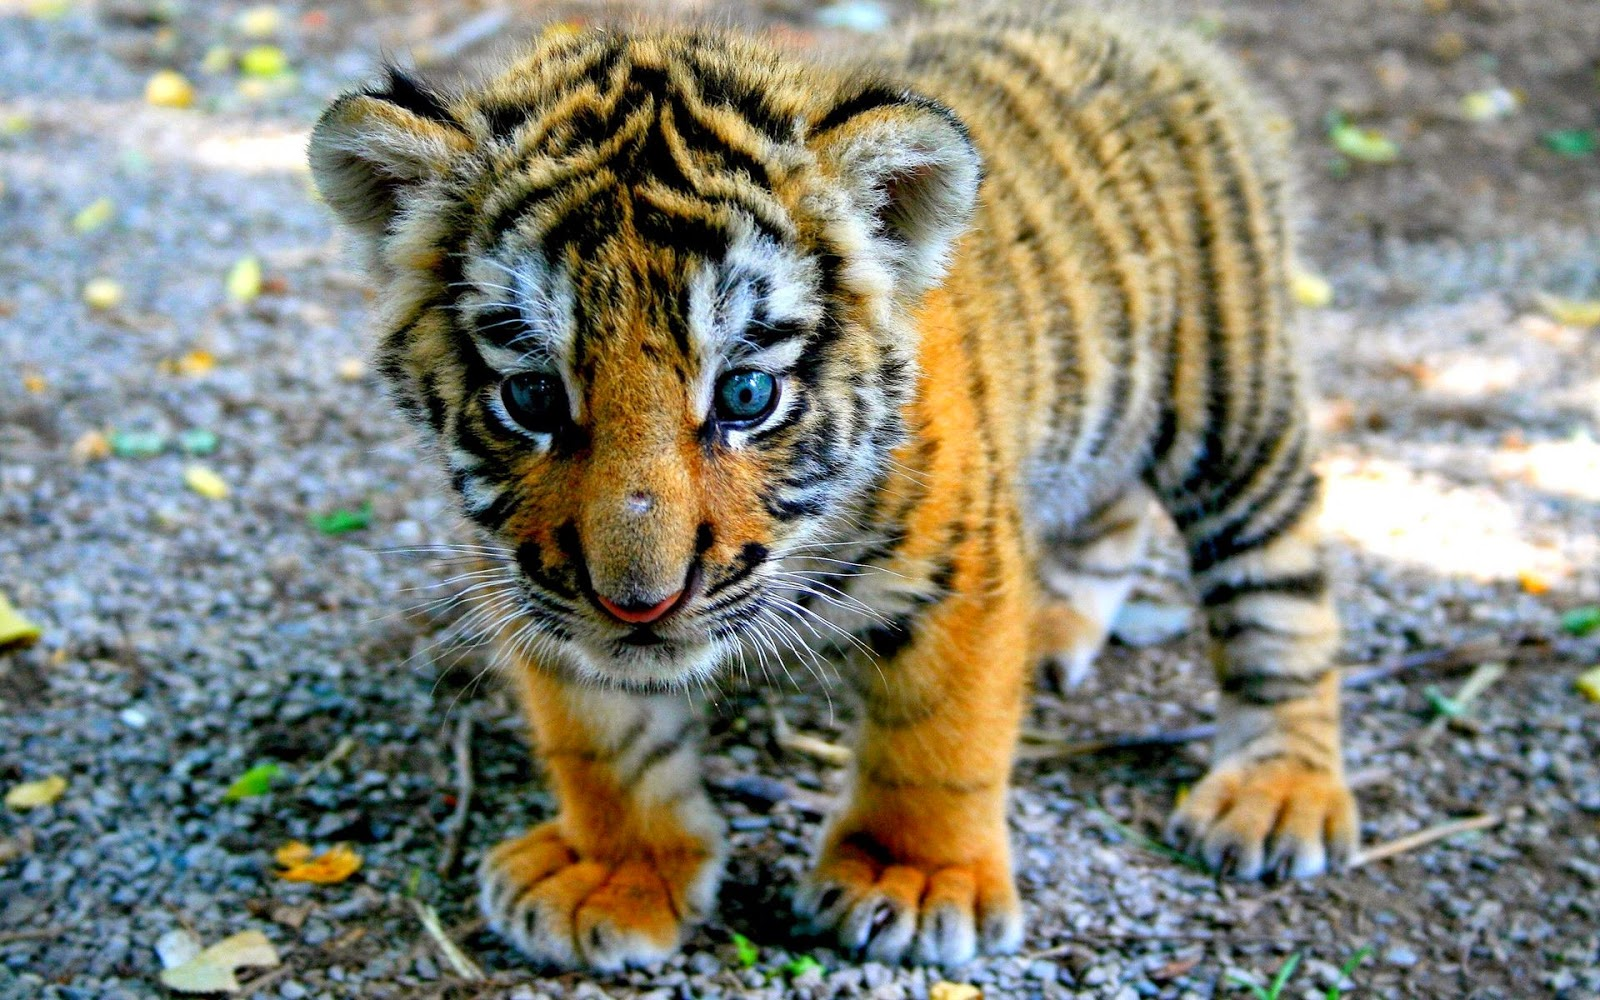 44 units of Baby Tiger Pictures